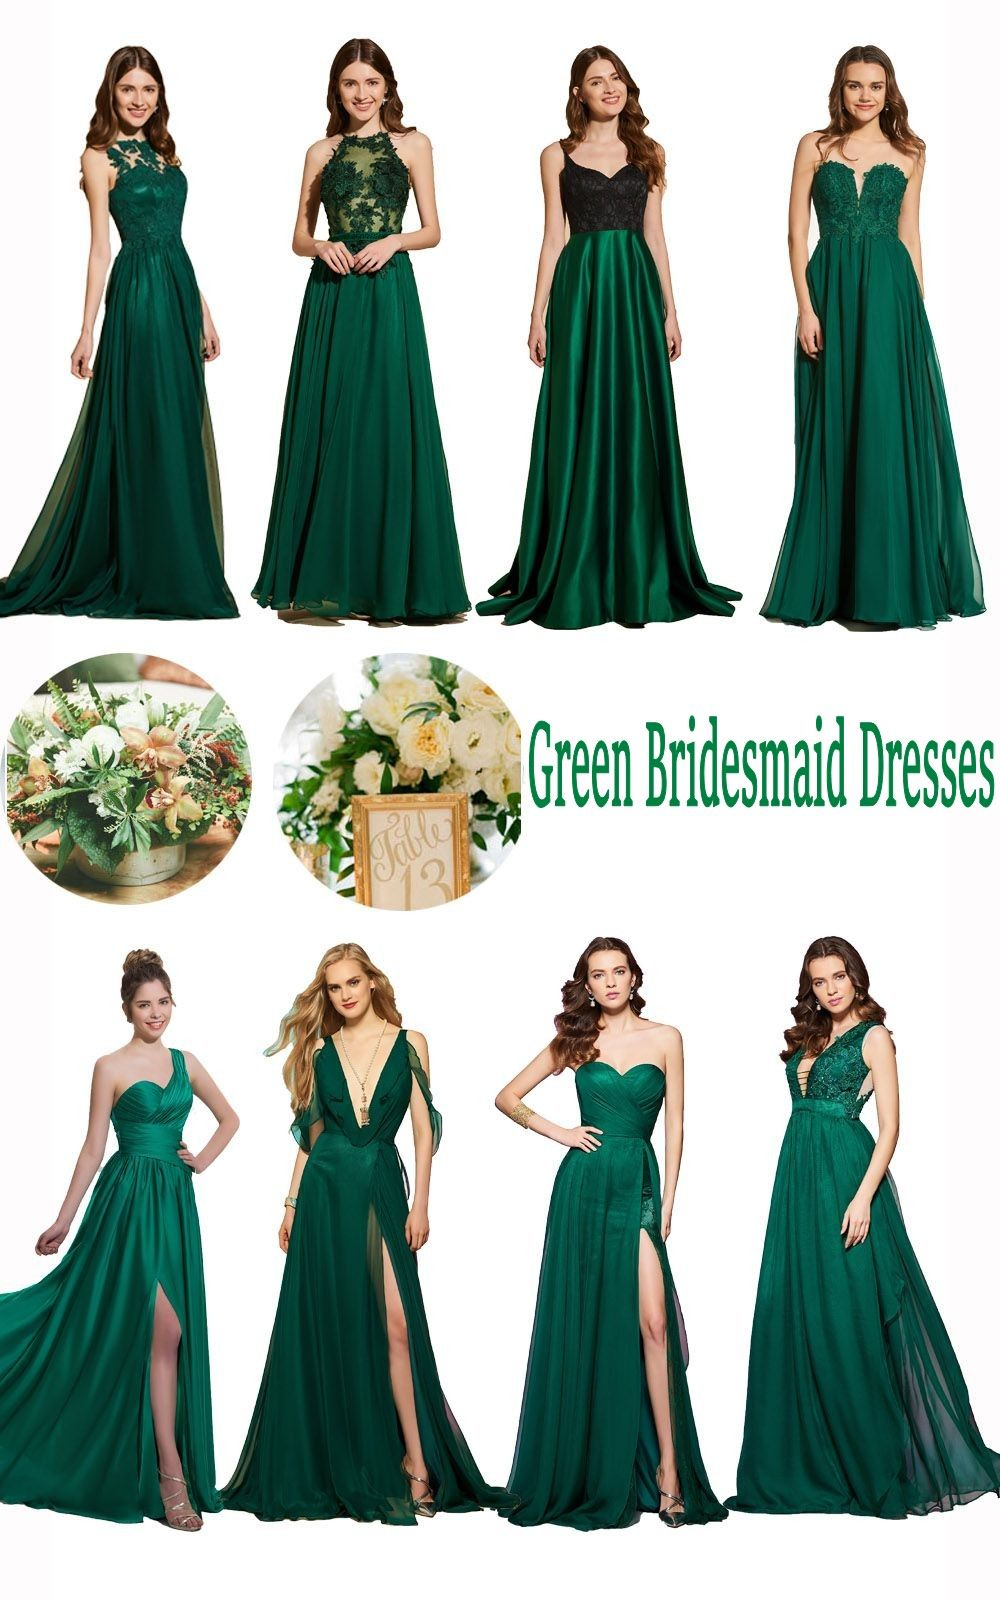 Green Bridesmaid Dresses Collection Green Bridesmaid Dresses Emerald Green Bridesmaid Dresses Emerald Bridesmaid Dresses